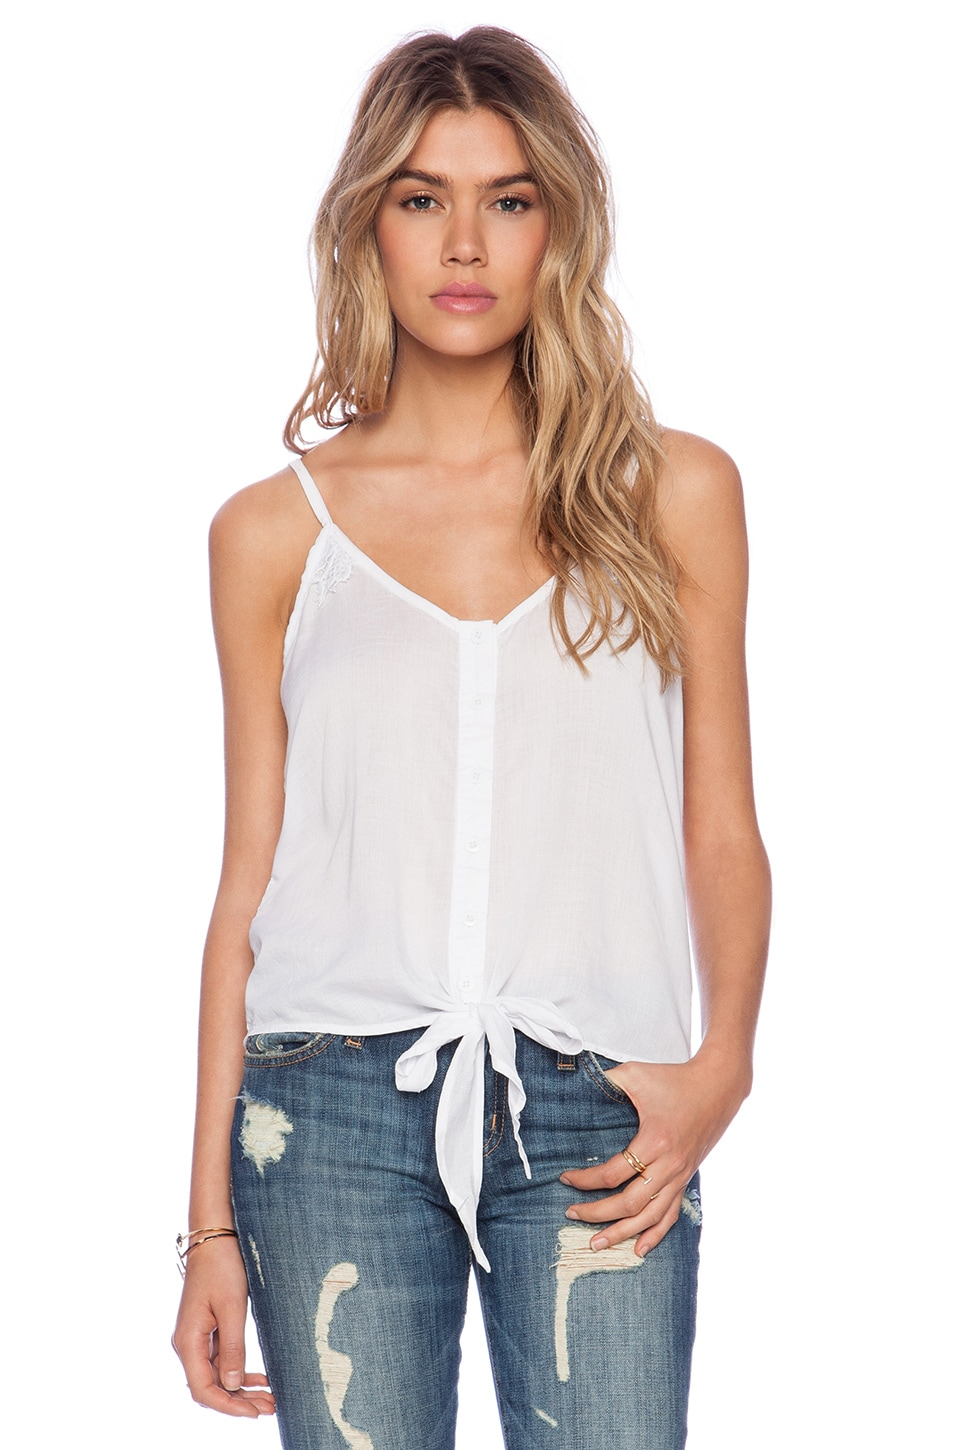 Tiare Hawaii Alyson Lace Panel Tank Top in White